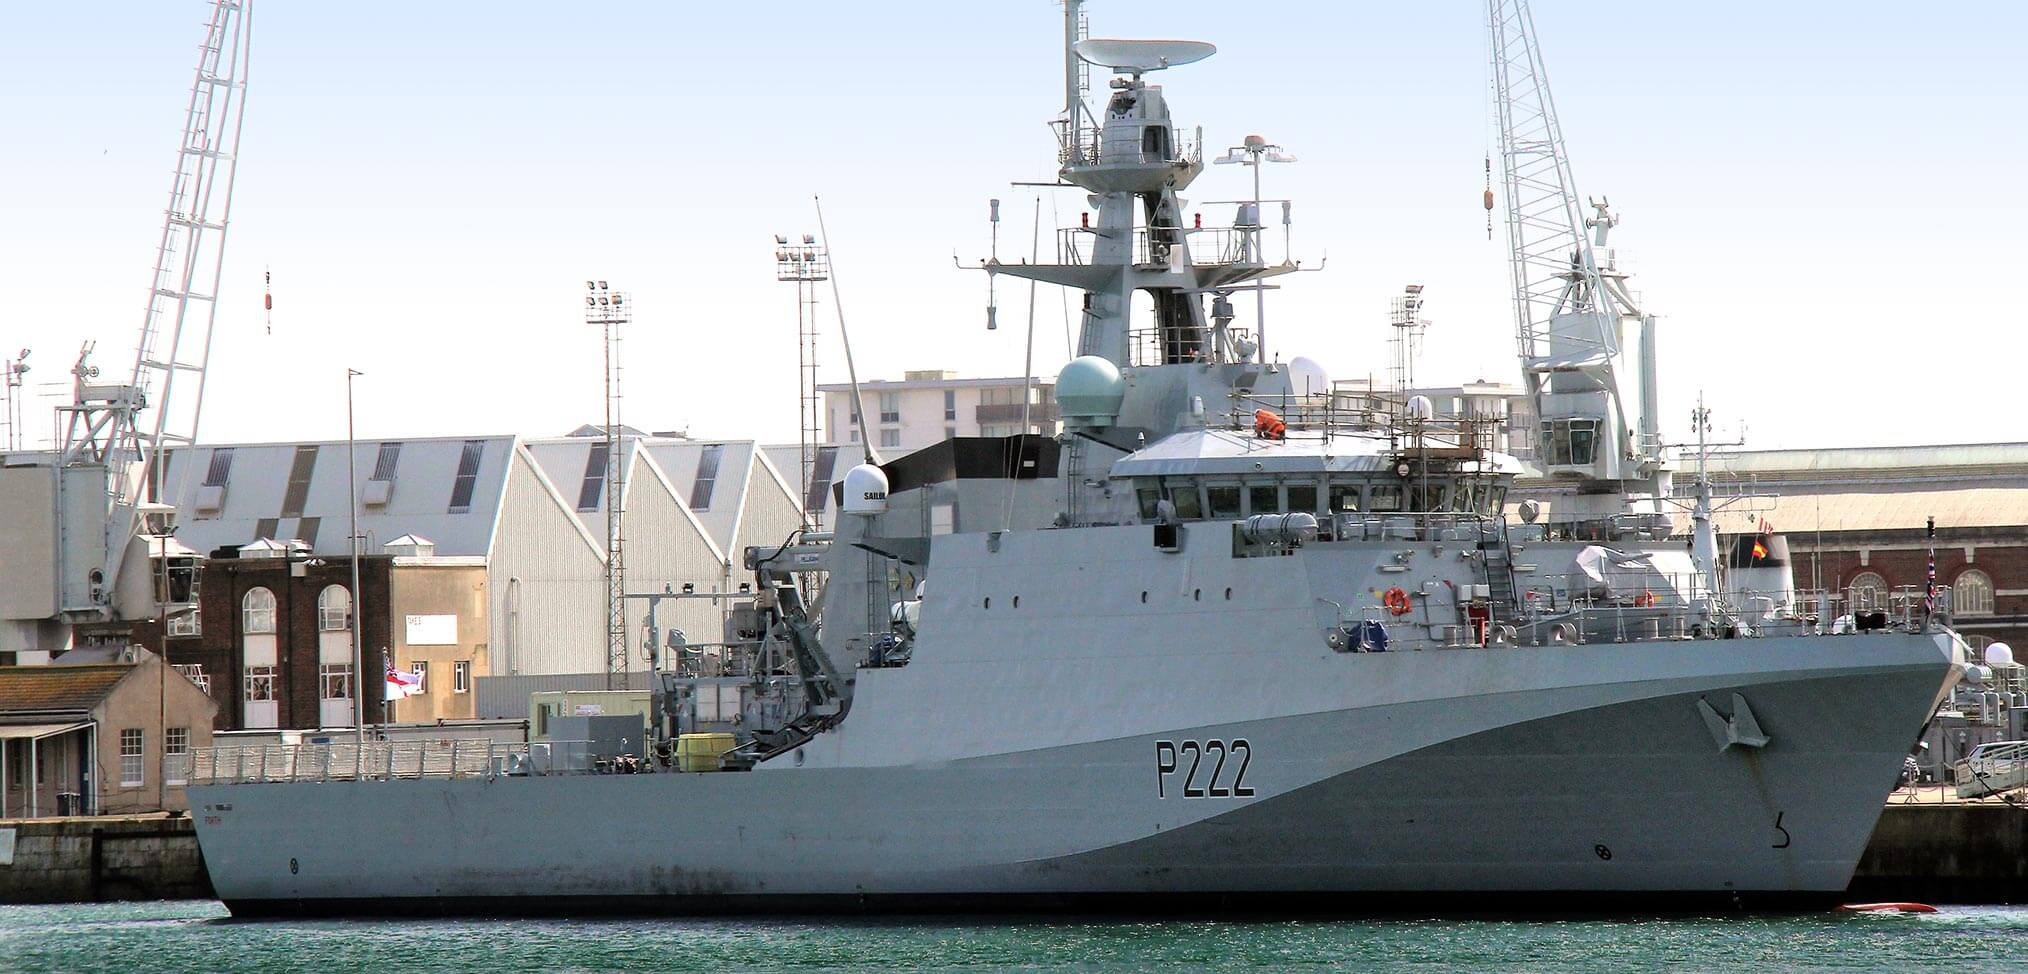 HMS Forth alongside in Portsmouth